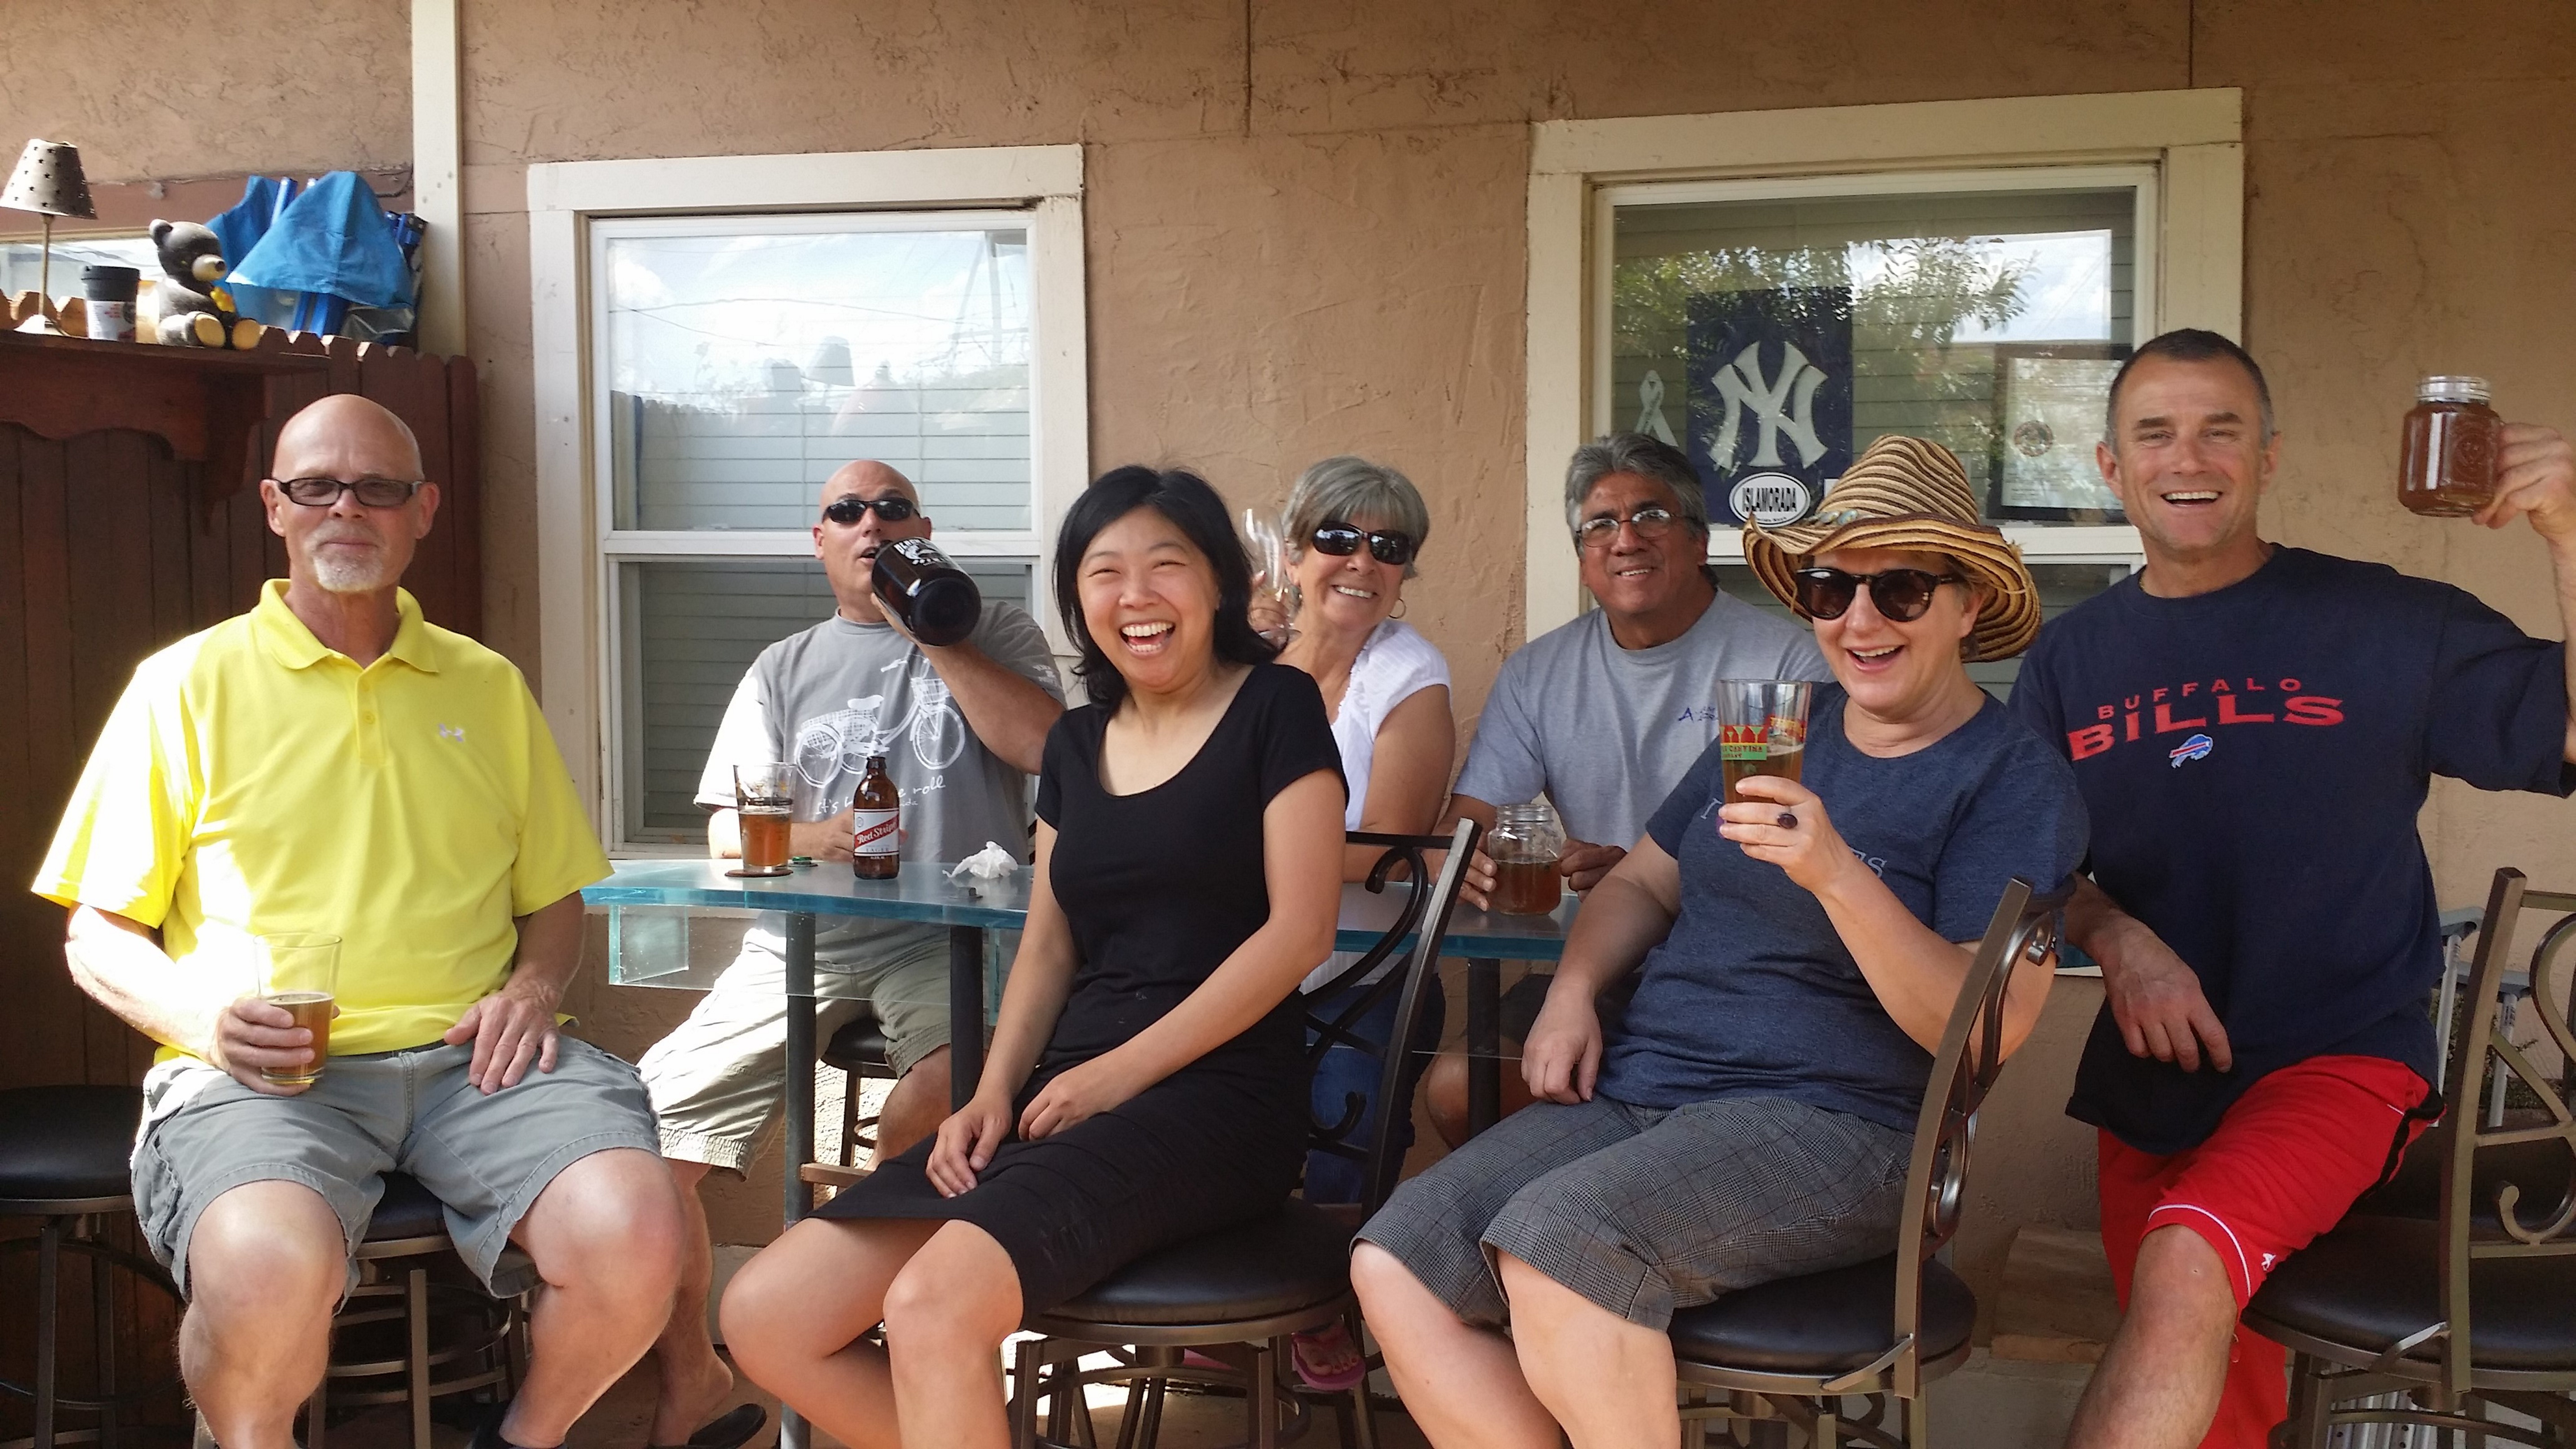 John Lodico, right, a SUNY Fredonia State graduate who recently turned his Denver home into a bed and breakfast, entertains visitors on his patio with craft beer and pot in the wake of recreational marijuana legalization earlier this year in Colorado.